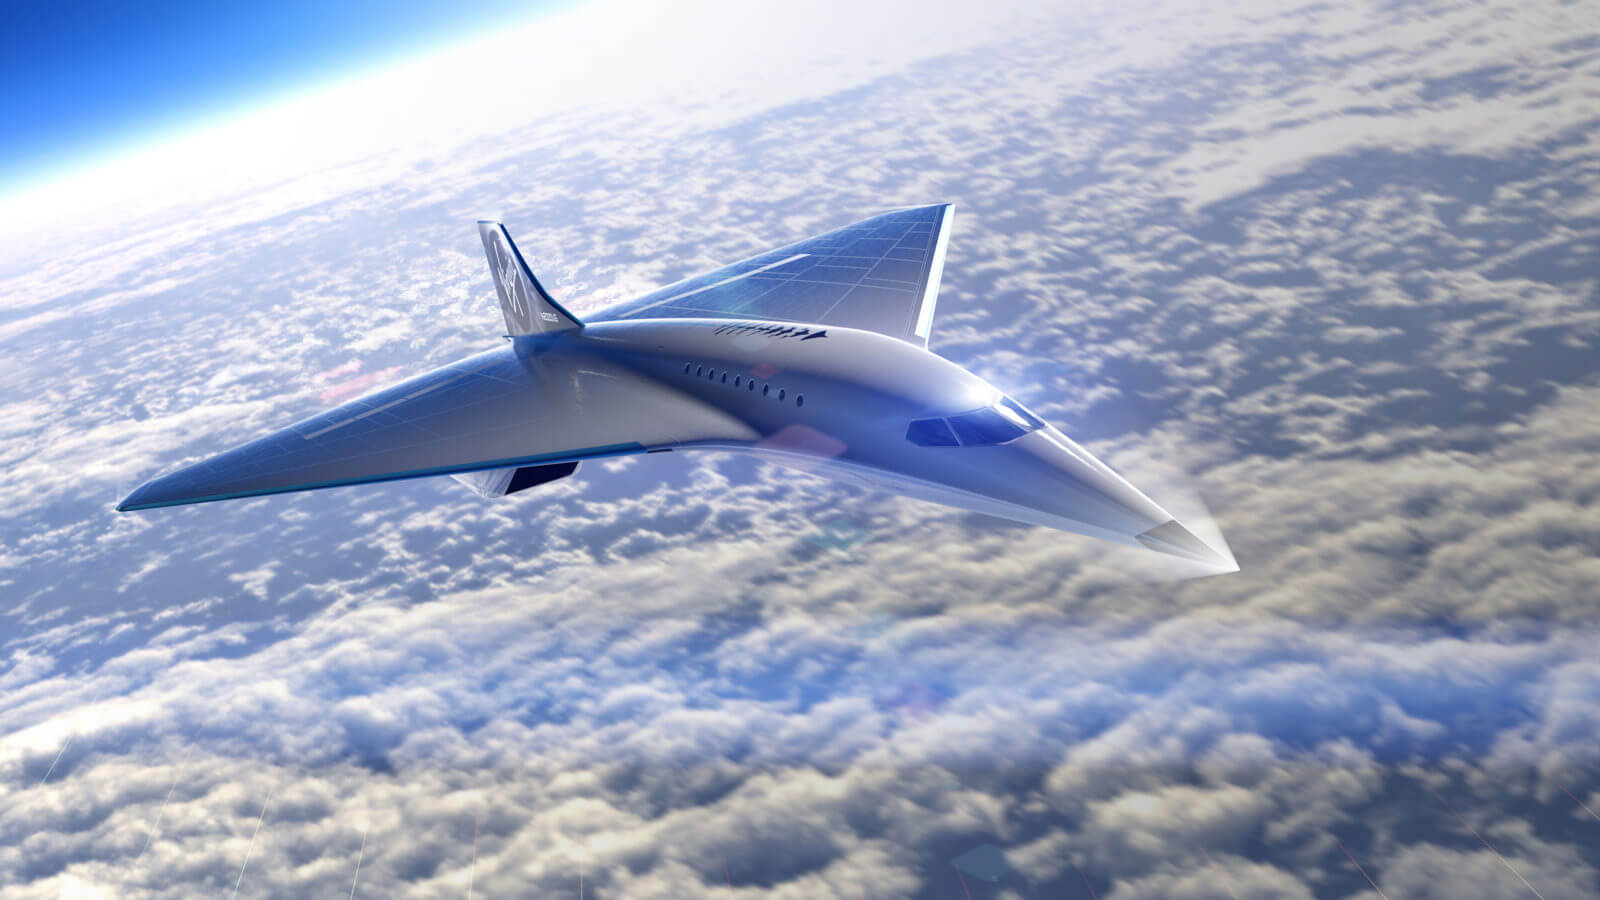 Virgin Galactic Mach 3 aircraft will be powered by Rolls-Royce